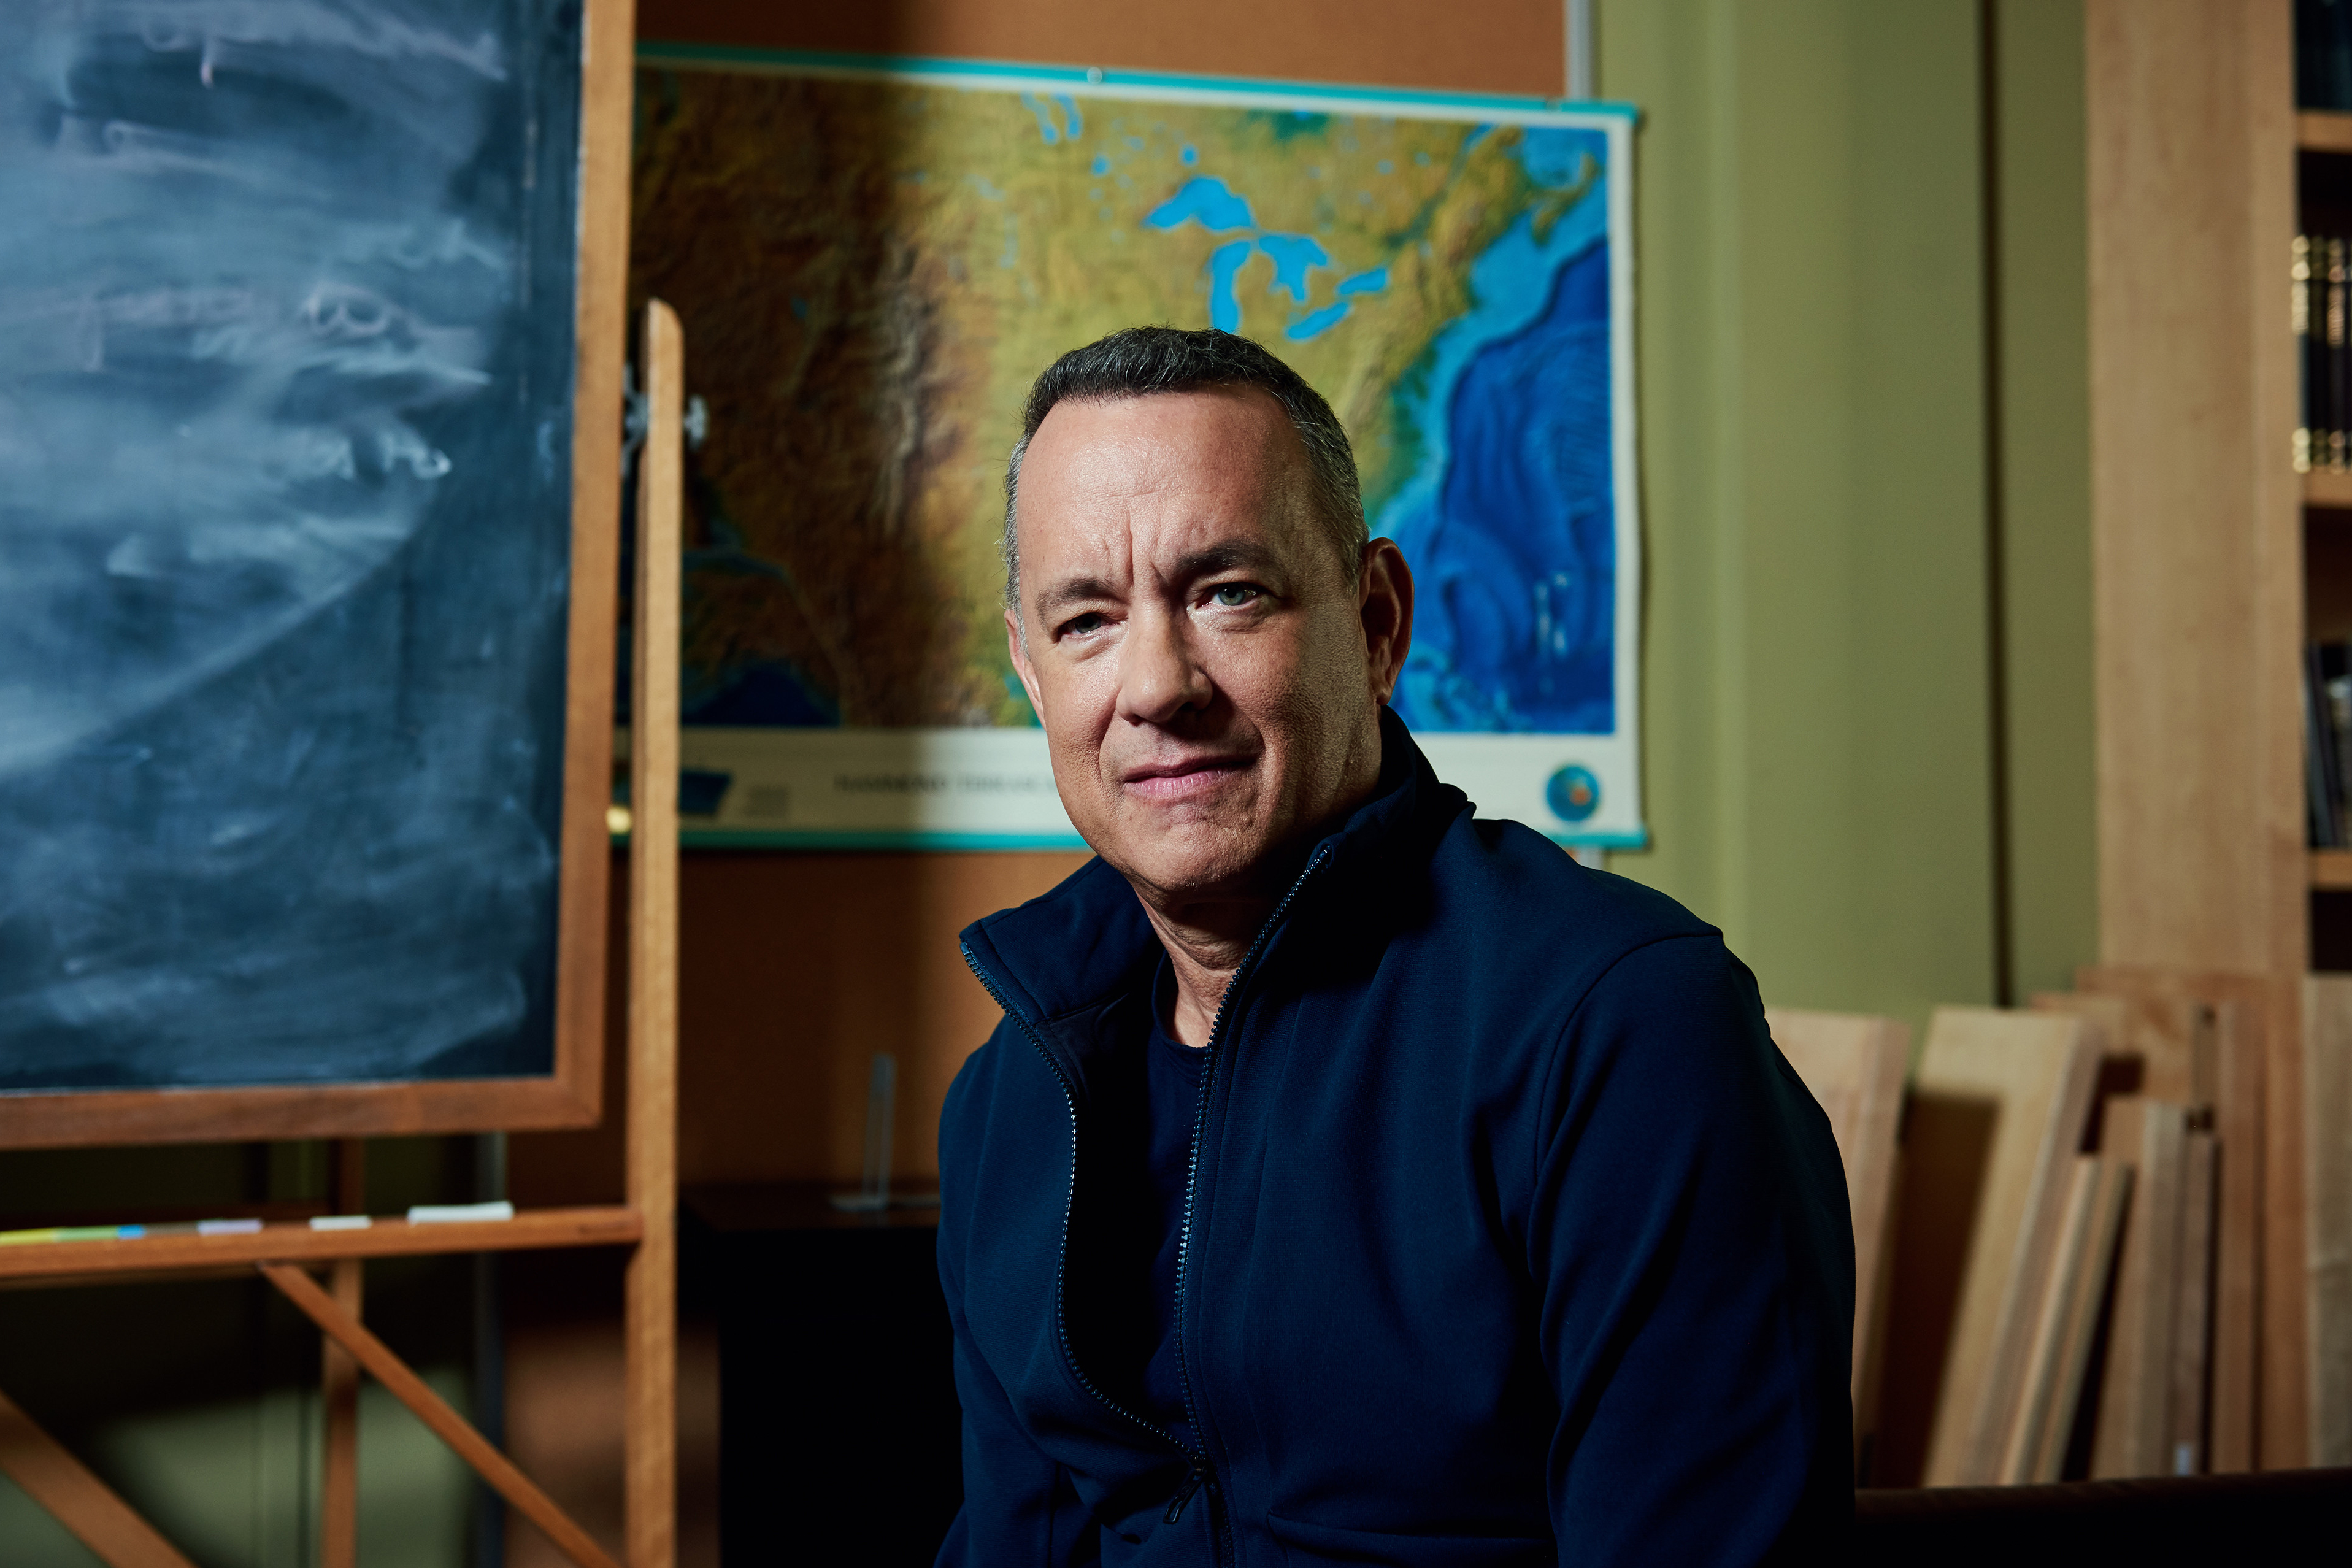 """Tom Hanks, who has a book of short stories called """"Uncommon Type"""" out this month, at his office in Santa Monica, Calif., Oct. 6, 2017. The title refers to his love of vintage typewriters. (Jake Michaels/The New York Times)"""